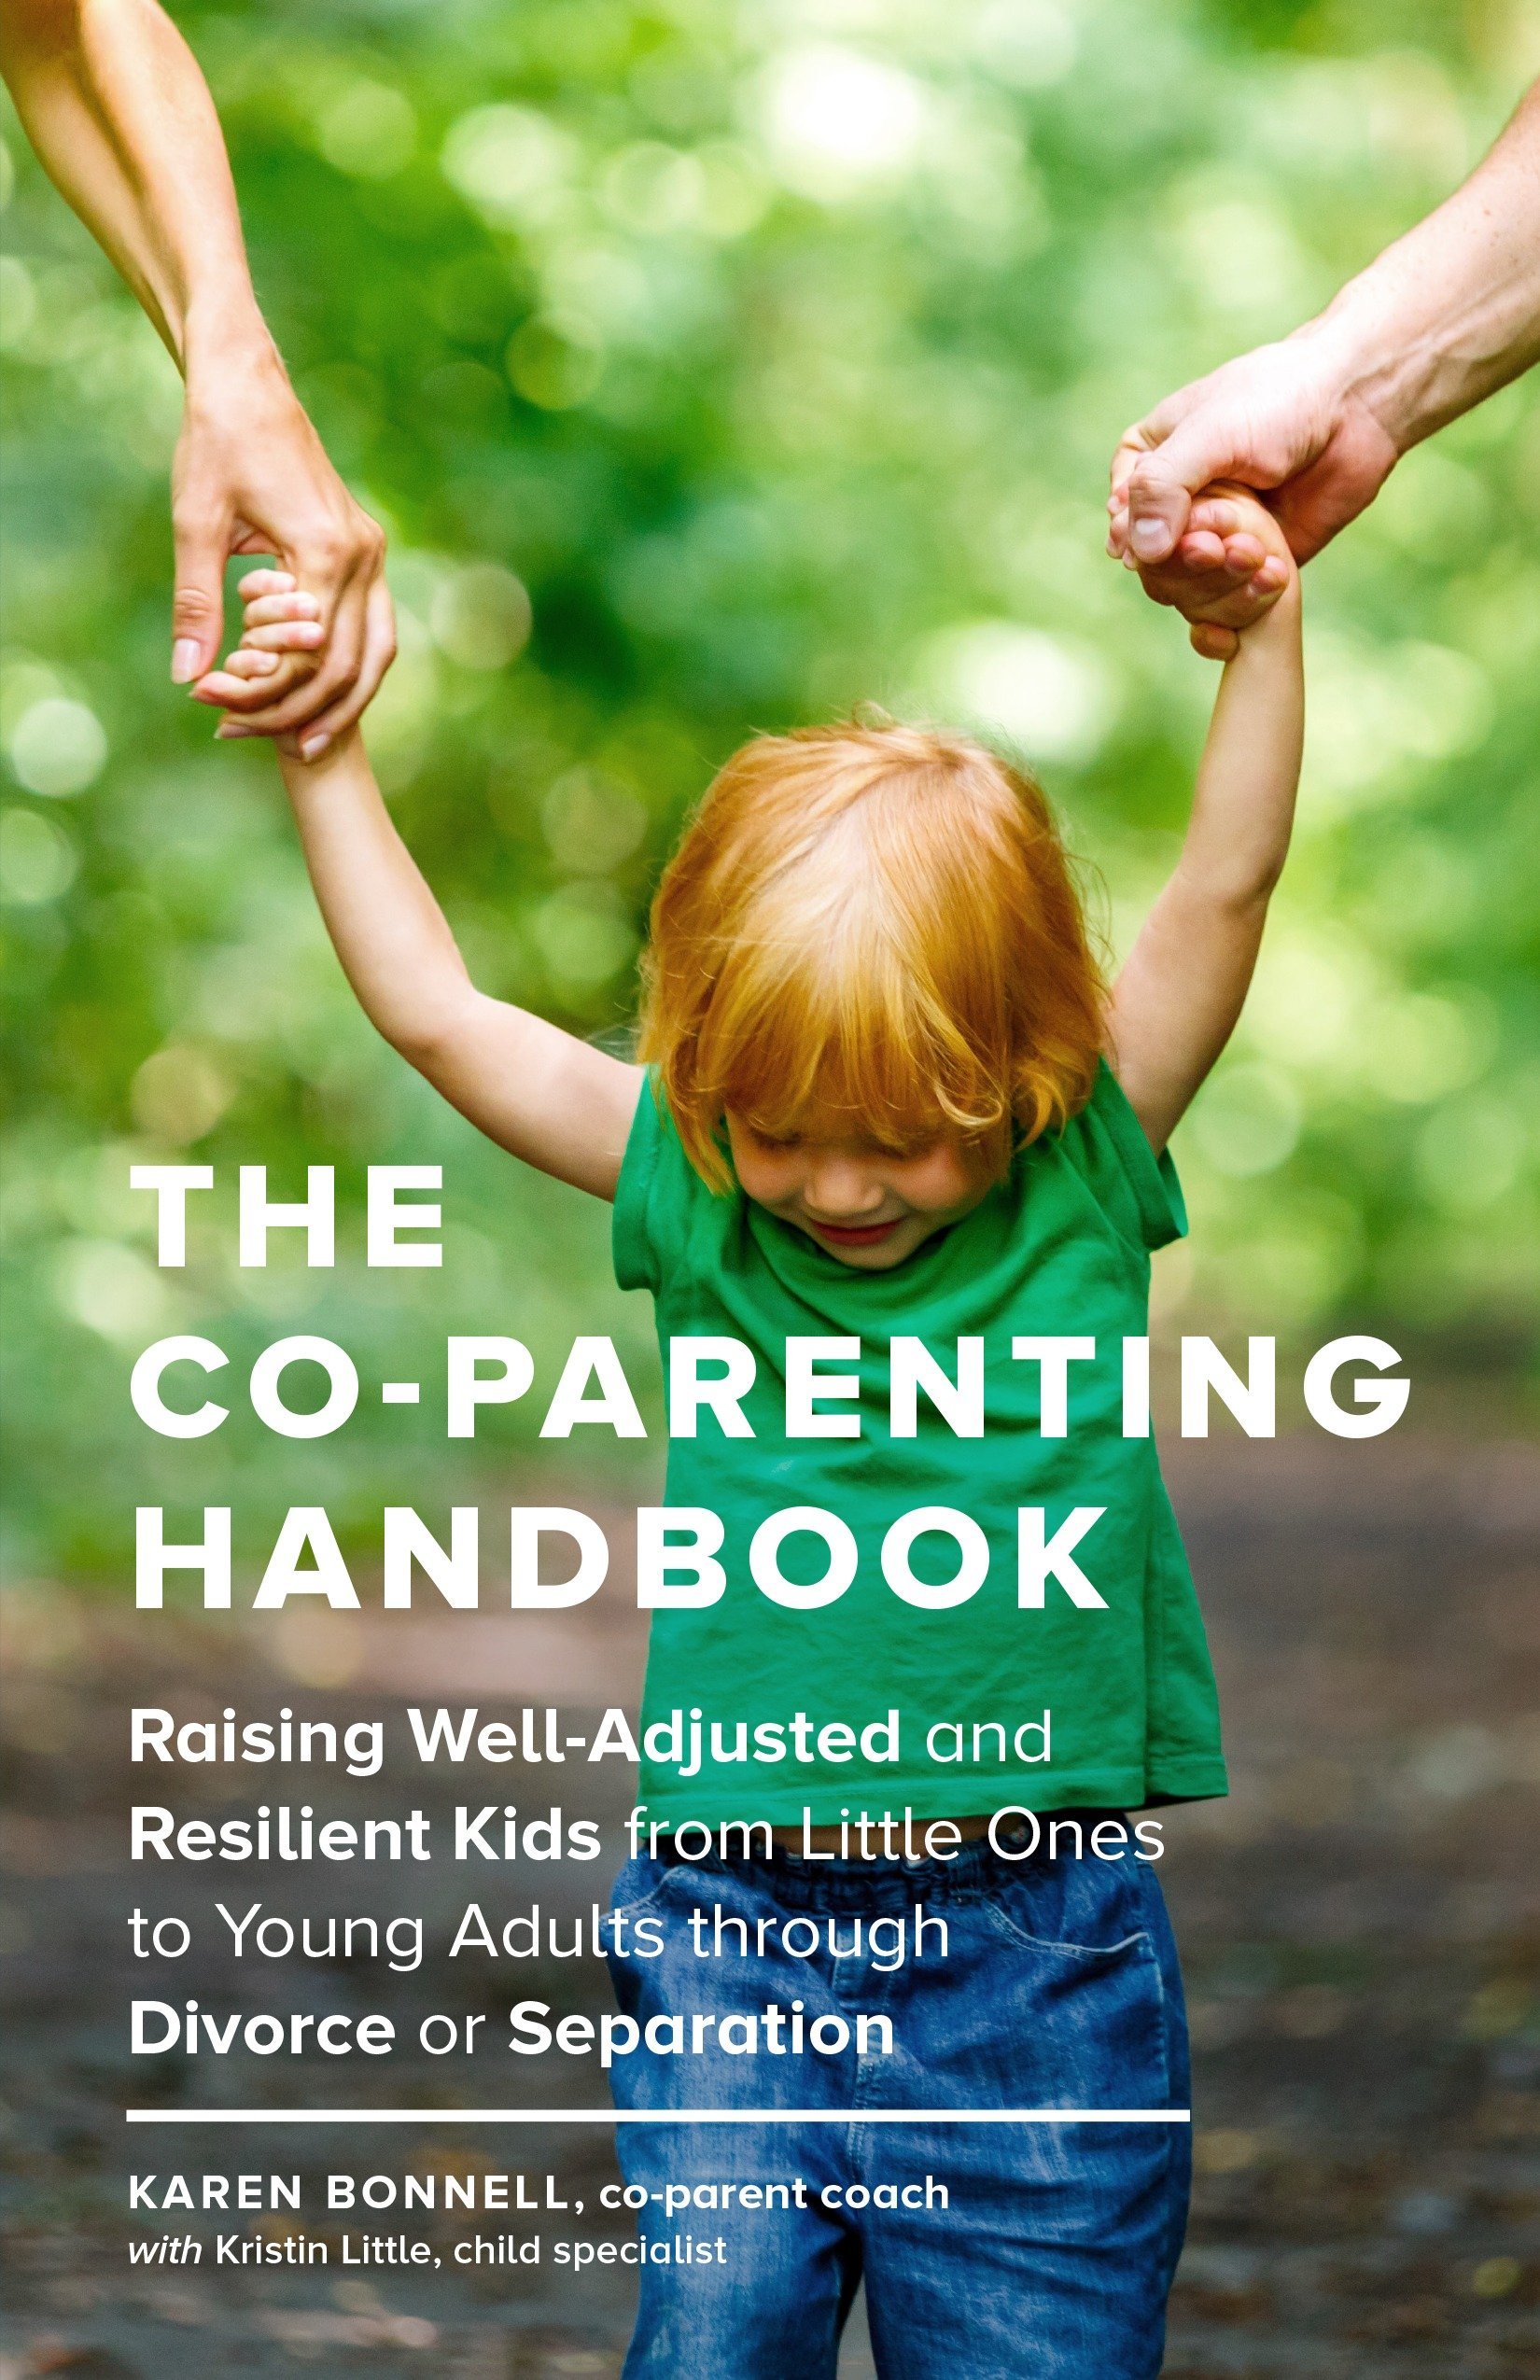 The Co-Parenting Handbook Raising Well-Adjusted and Resilient Kids from Little Ones to Young Adults through Divorce or Separation